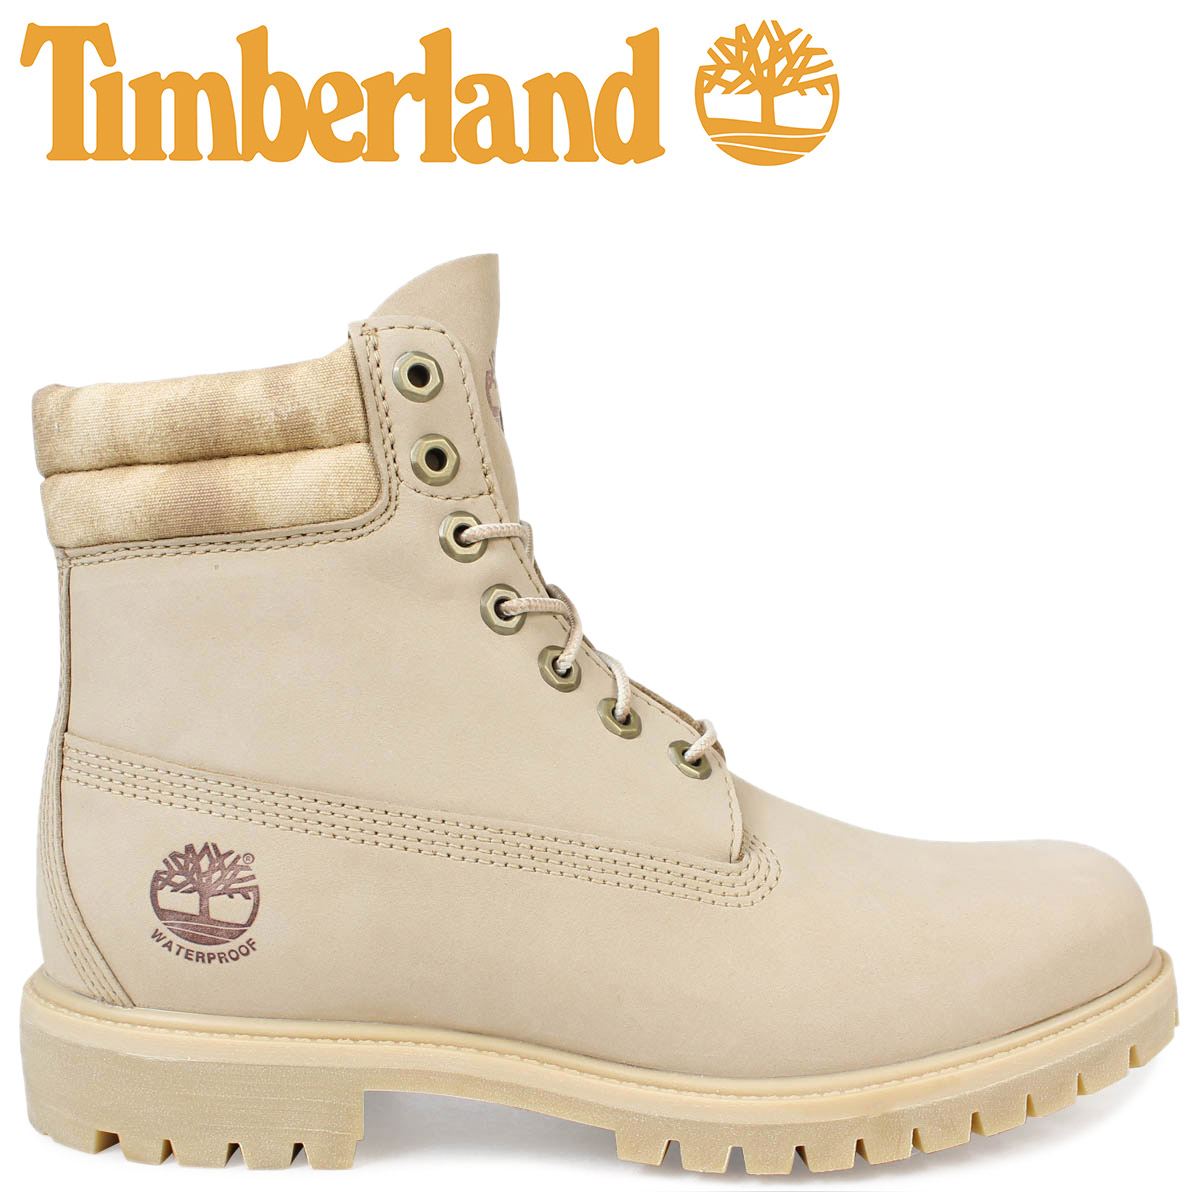 4ef24f90e259 ... weekend to the casual styling in a weekday while succeeding to a  craftsman ship since I sent waterproofing boots completely near 1973 off in  the life.